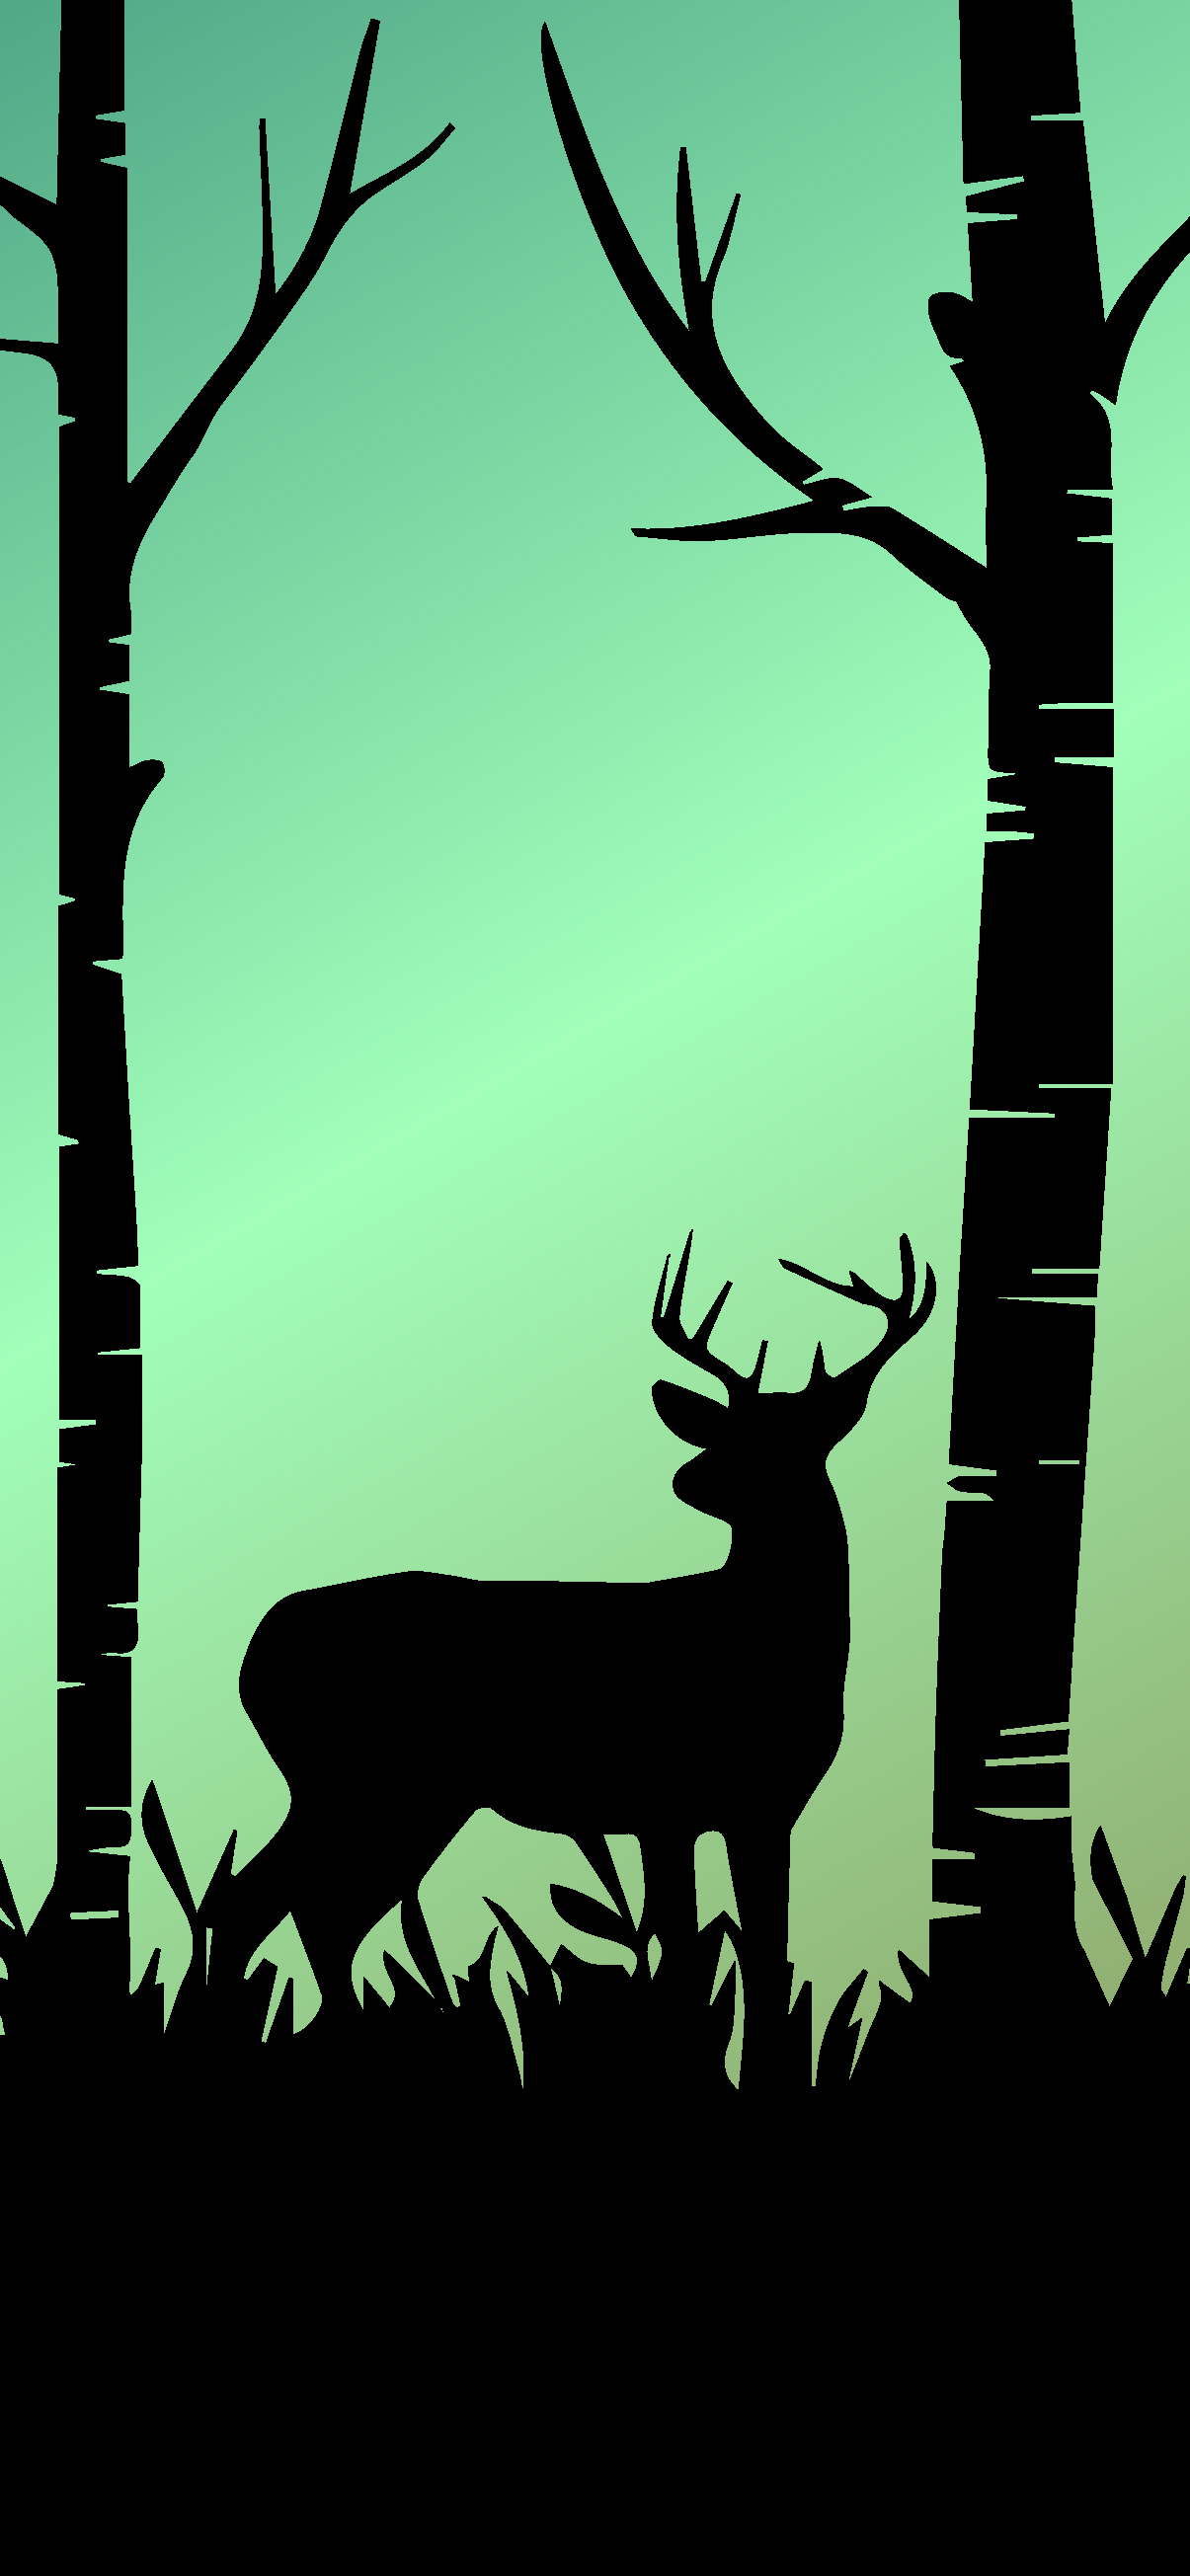 AMOLED WALLPAPER IPHONE HD - DEER IN FOREST